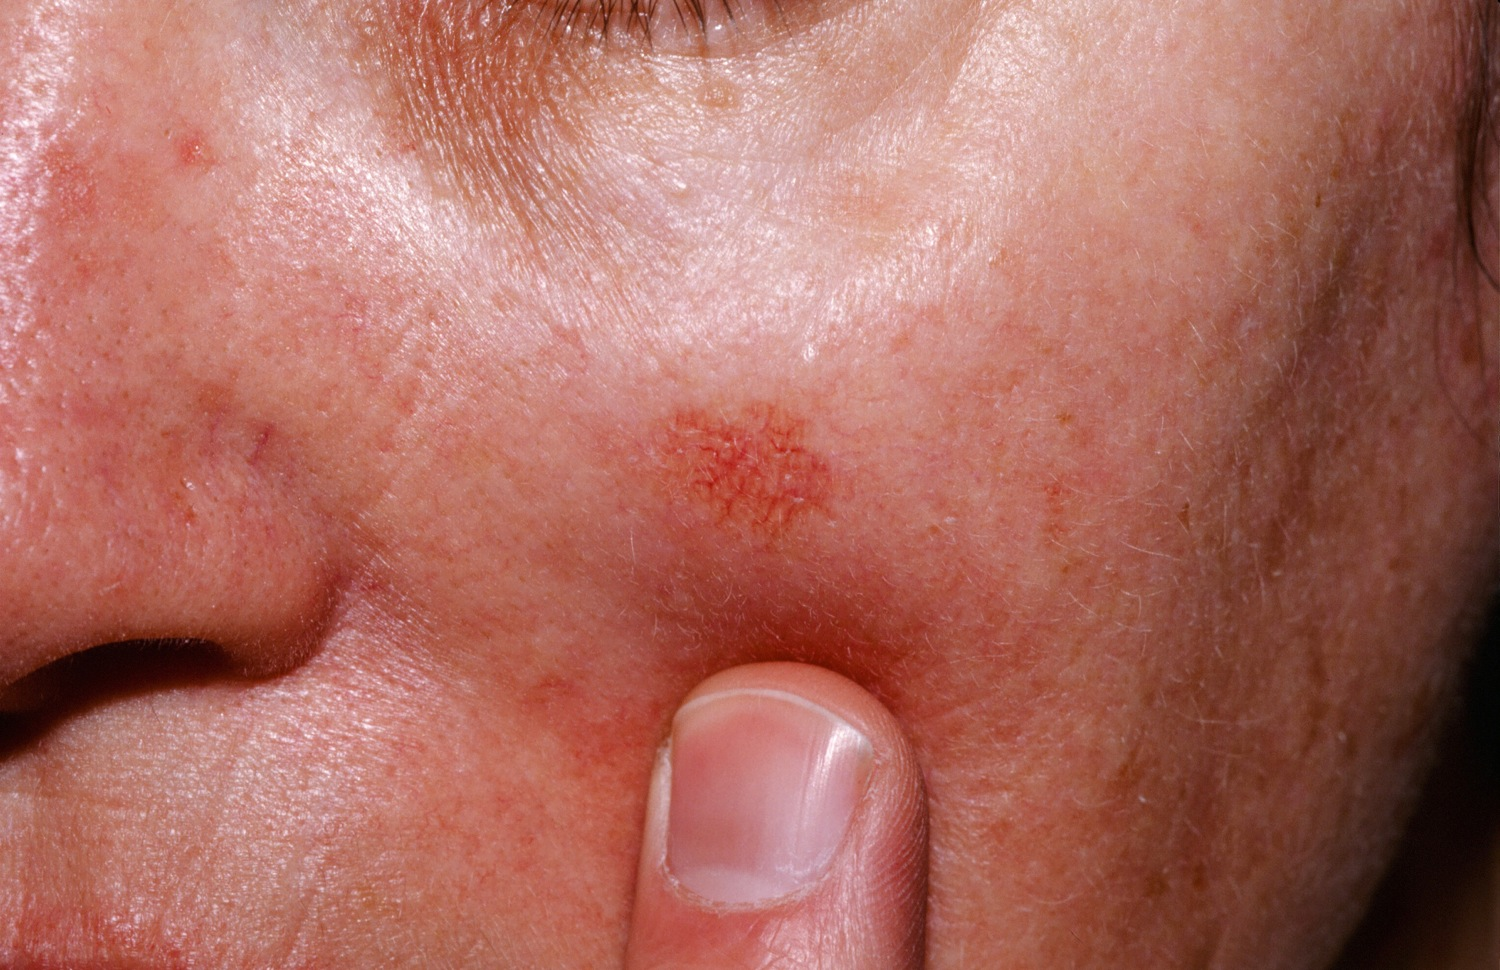 dry patches on upper lip - Dermatology - MedHelp